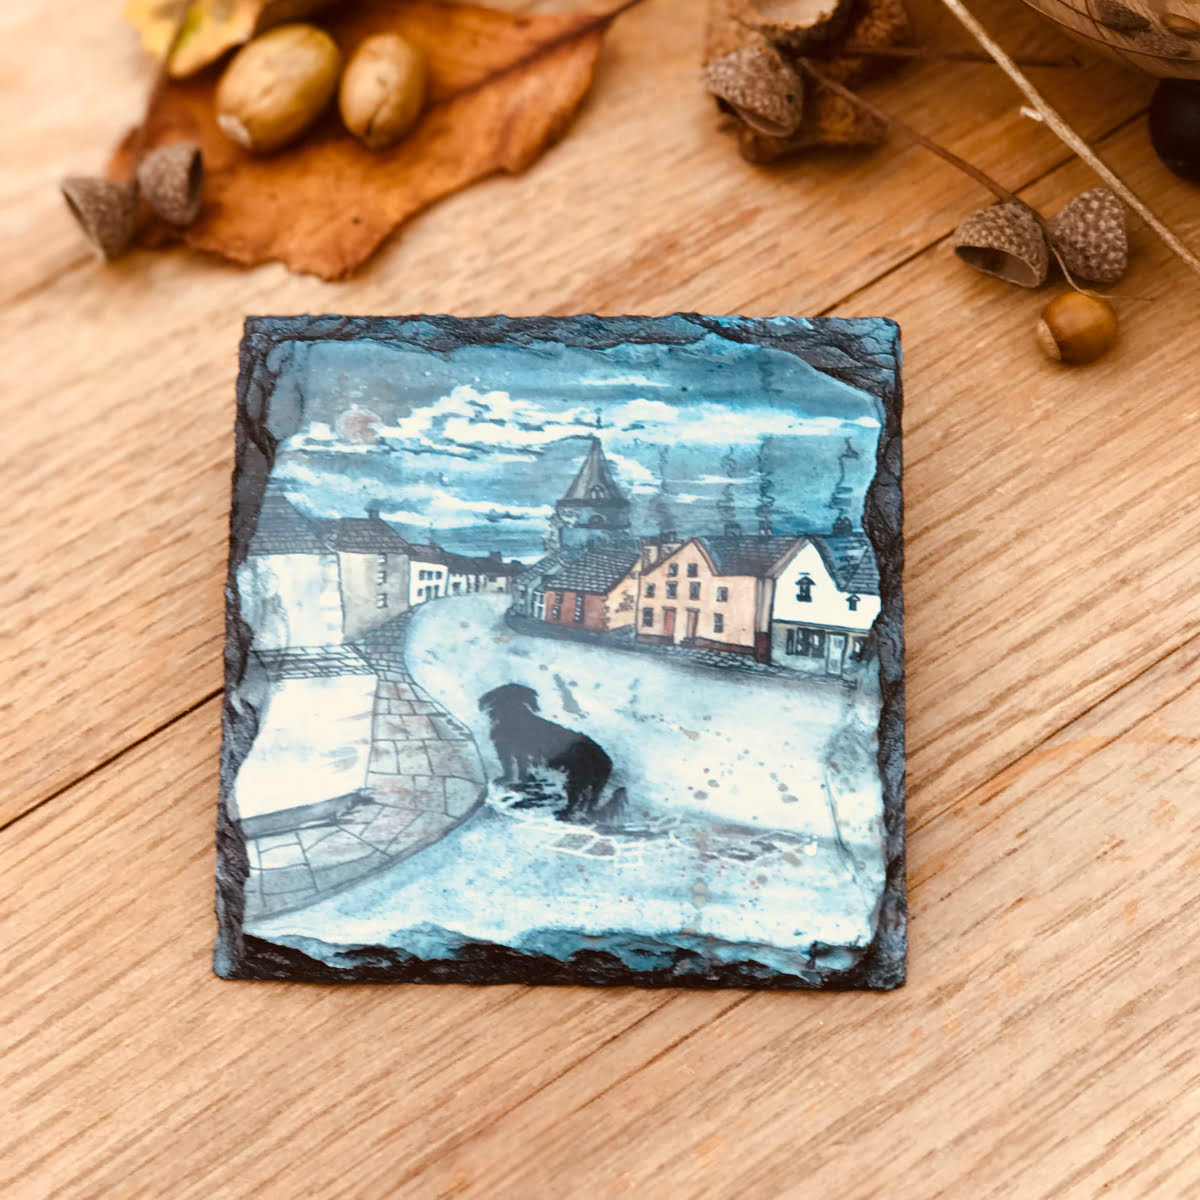 Unique slate coaster gift of dog in town by Joan Kennedy artist